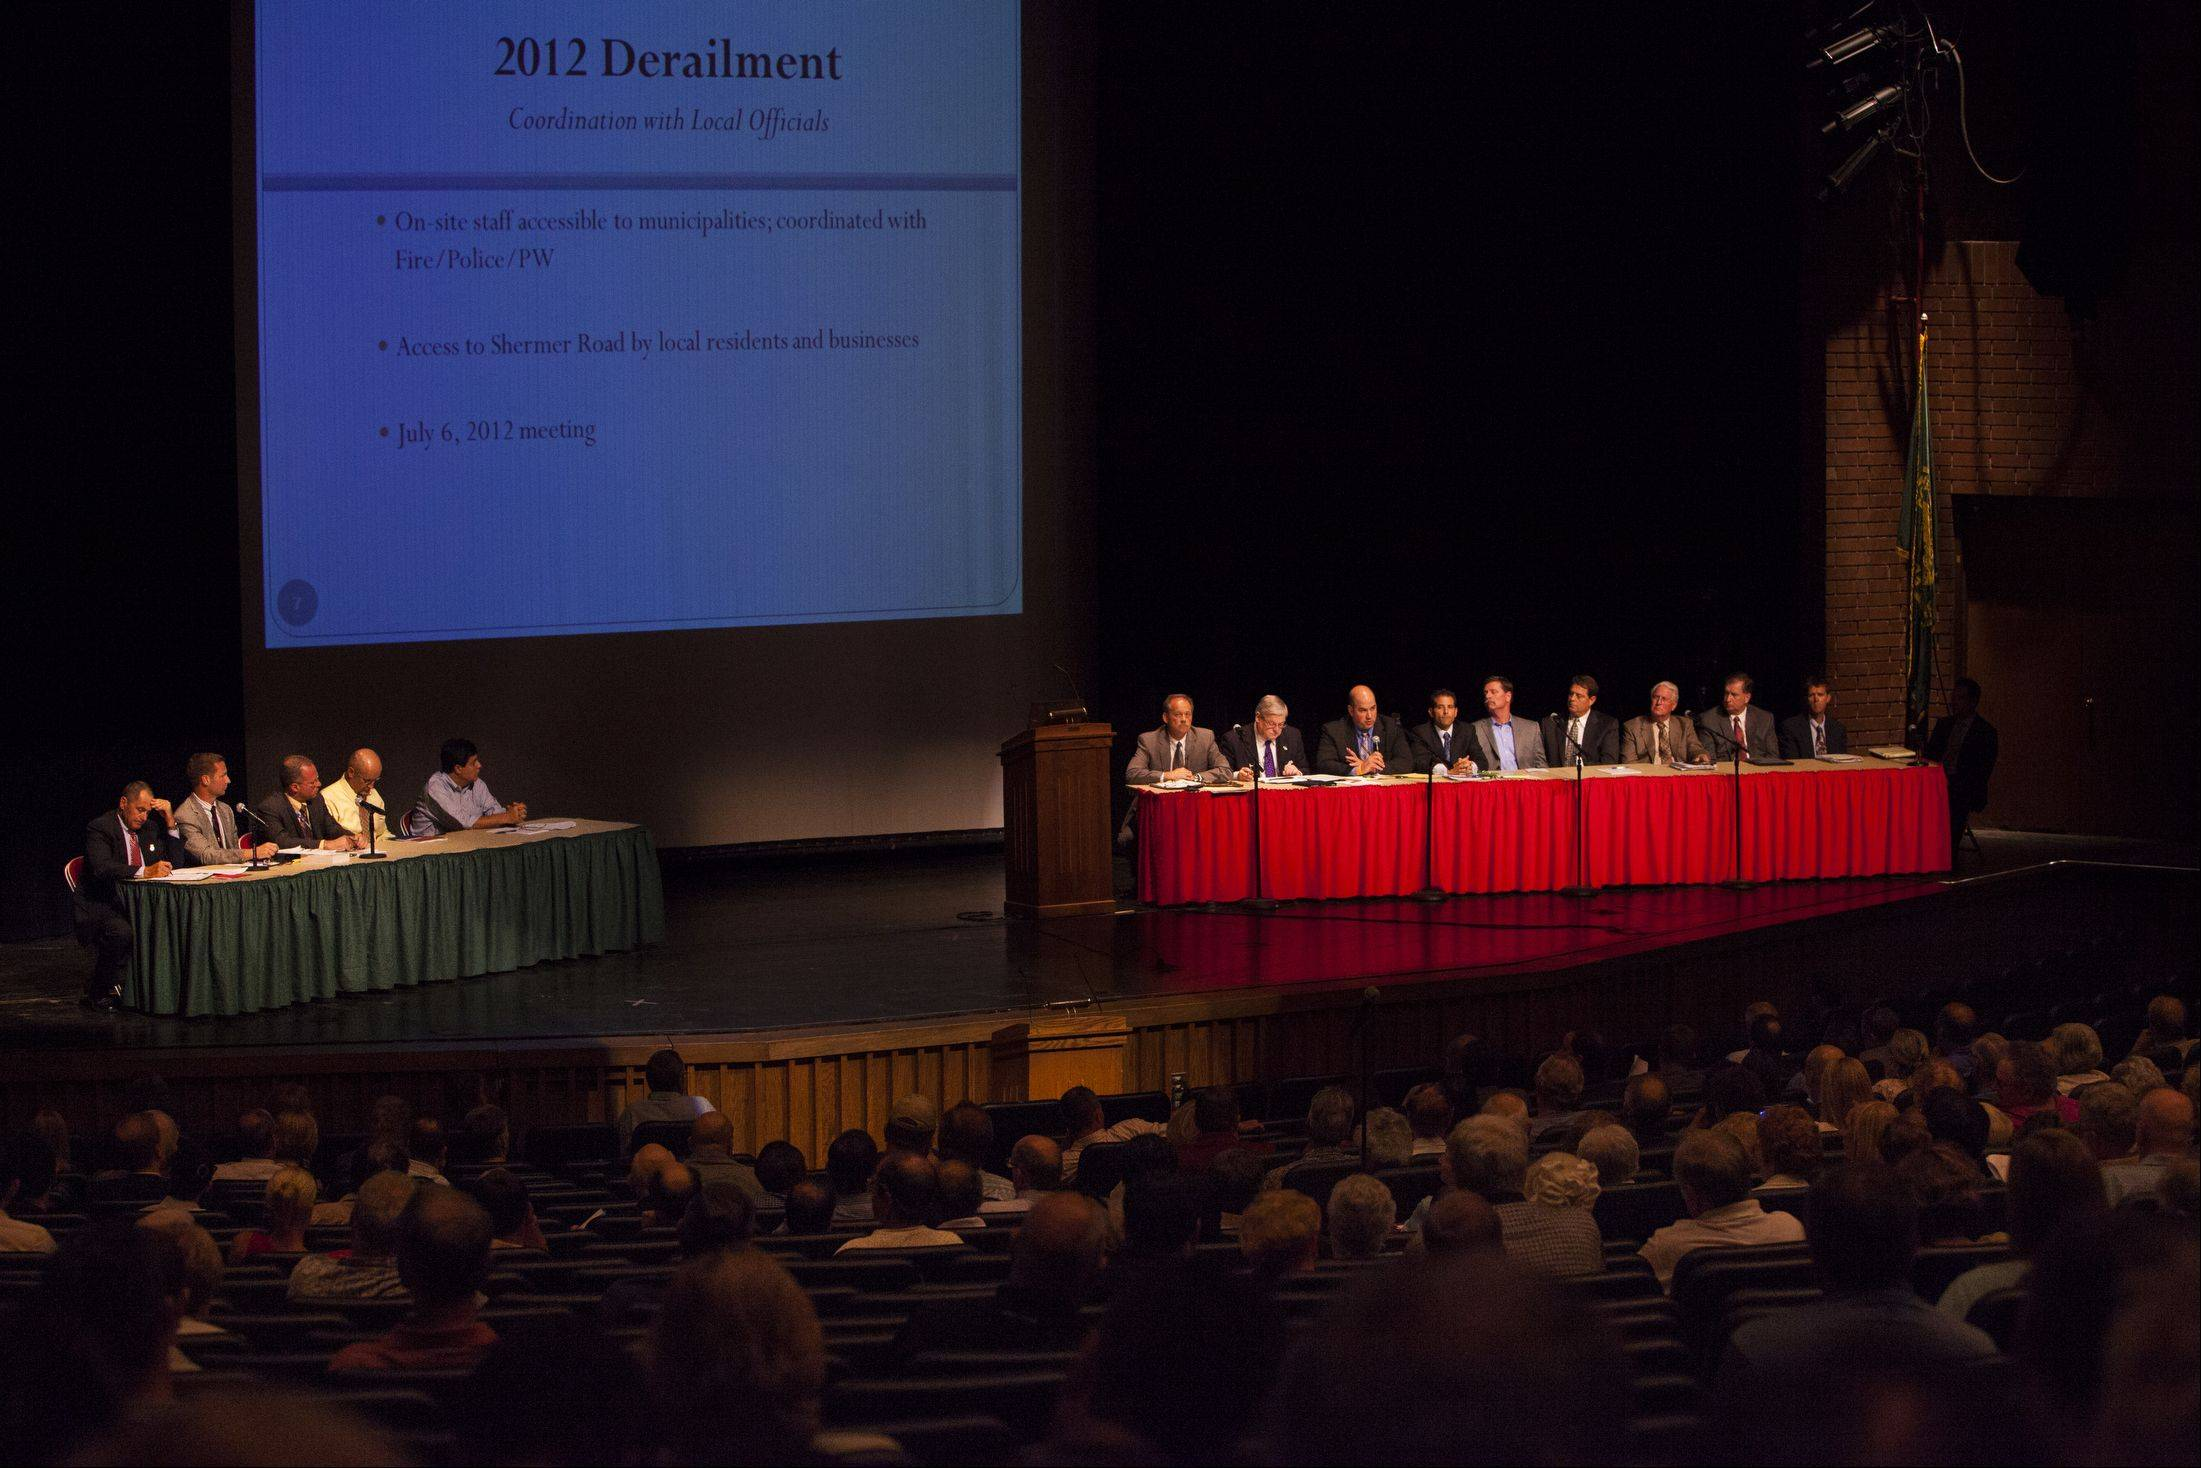 Union Pacific officials held a meeting Monday night at Glenbrook North High School to discuss the train derailment of July 4.